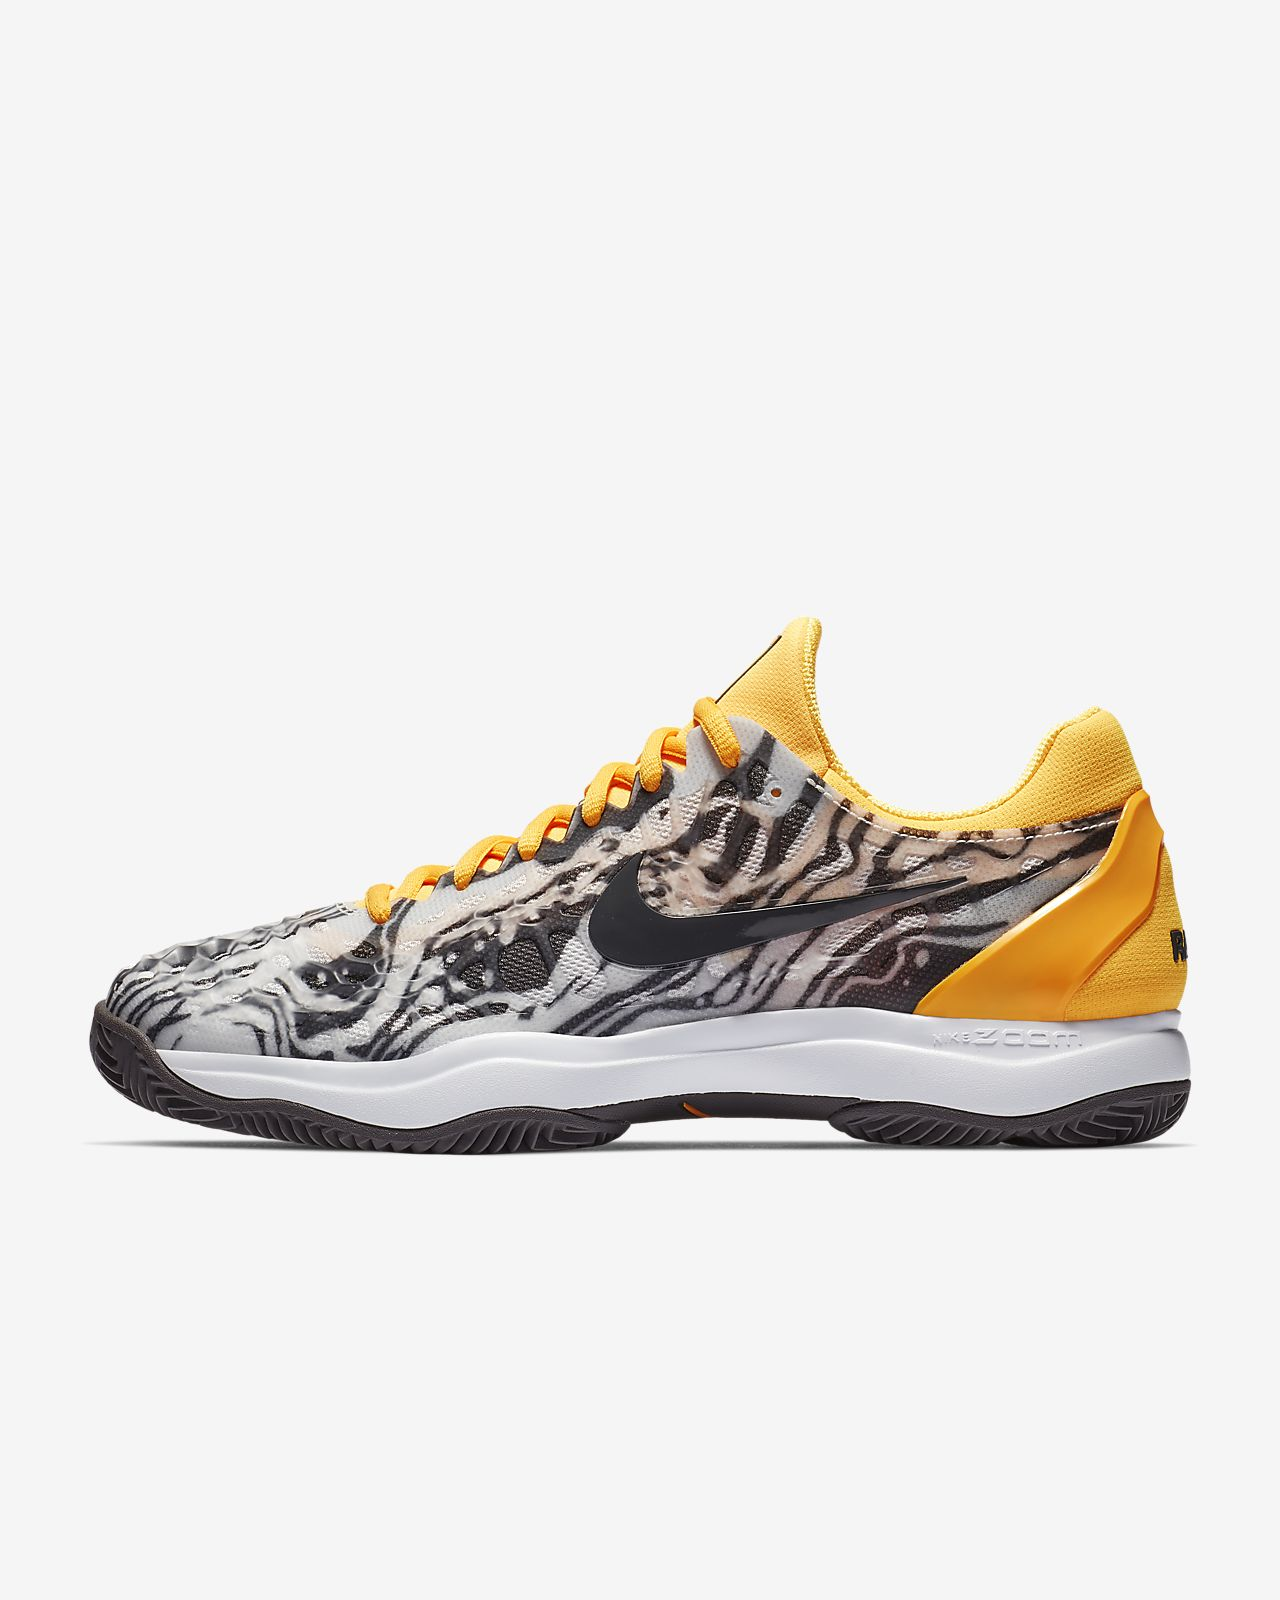 6f0ddaf7b4b Chaussure de tennis Nike Zoom Cage 3 Clay pour Homme. Nike.com BE